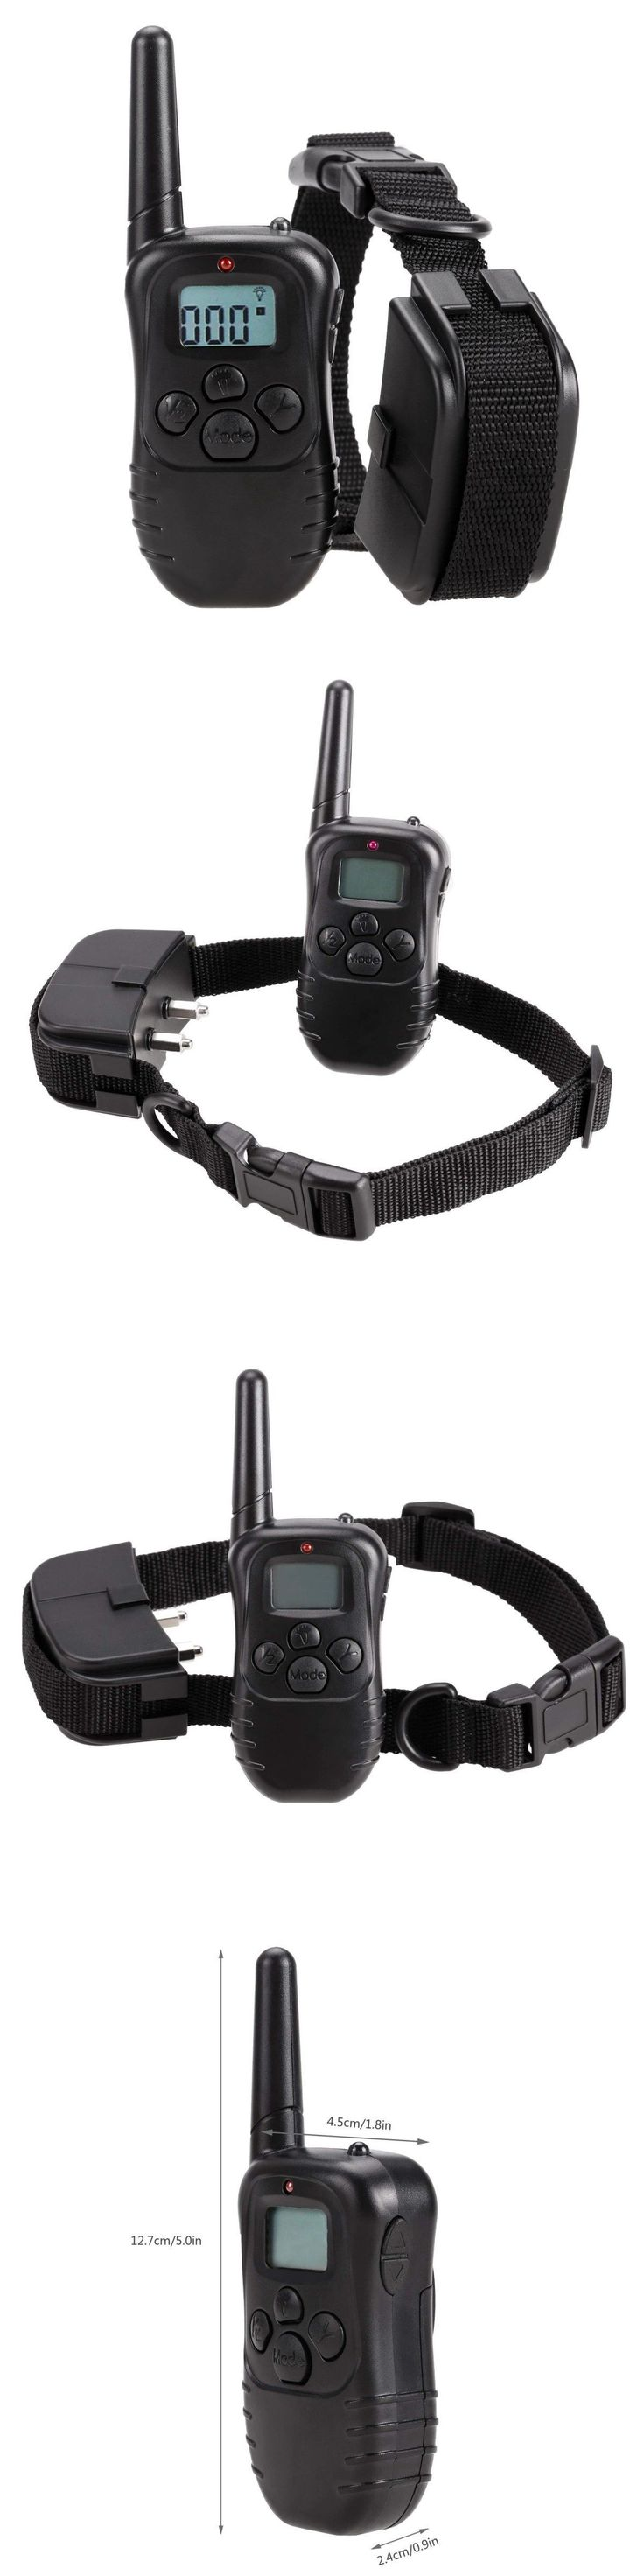 Animals Dog: 4 Modes Remote Control Collar Dog For Dogs Training Shock Petsafe Small Large -> BUY IT NOW ONLY: $38.48 on eBay!